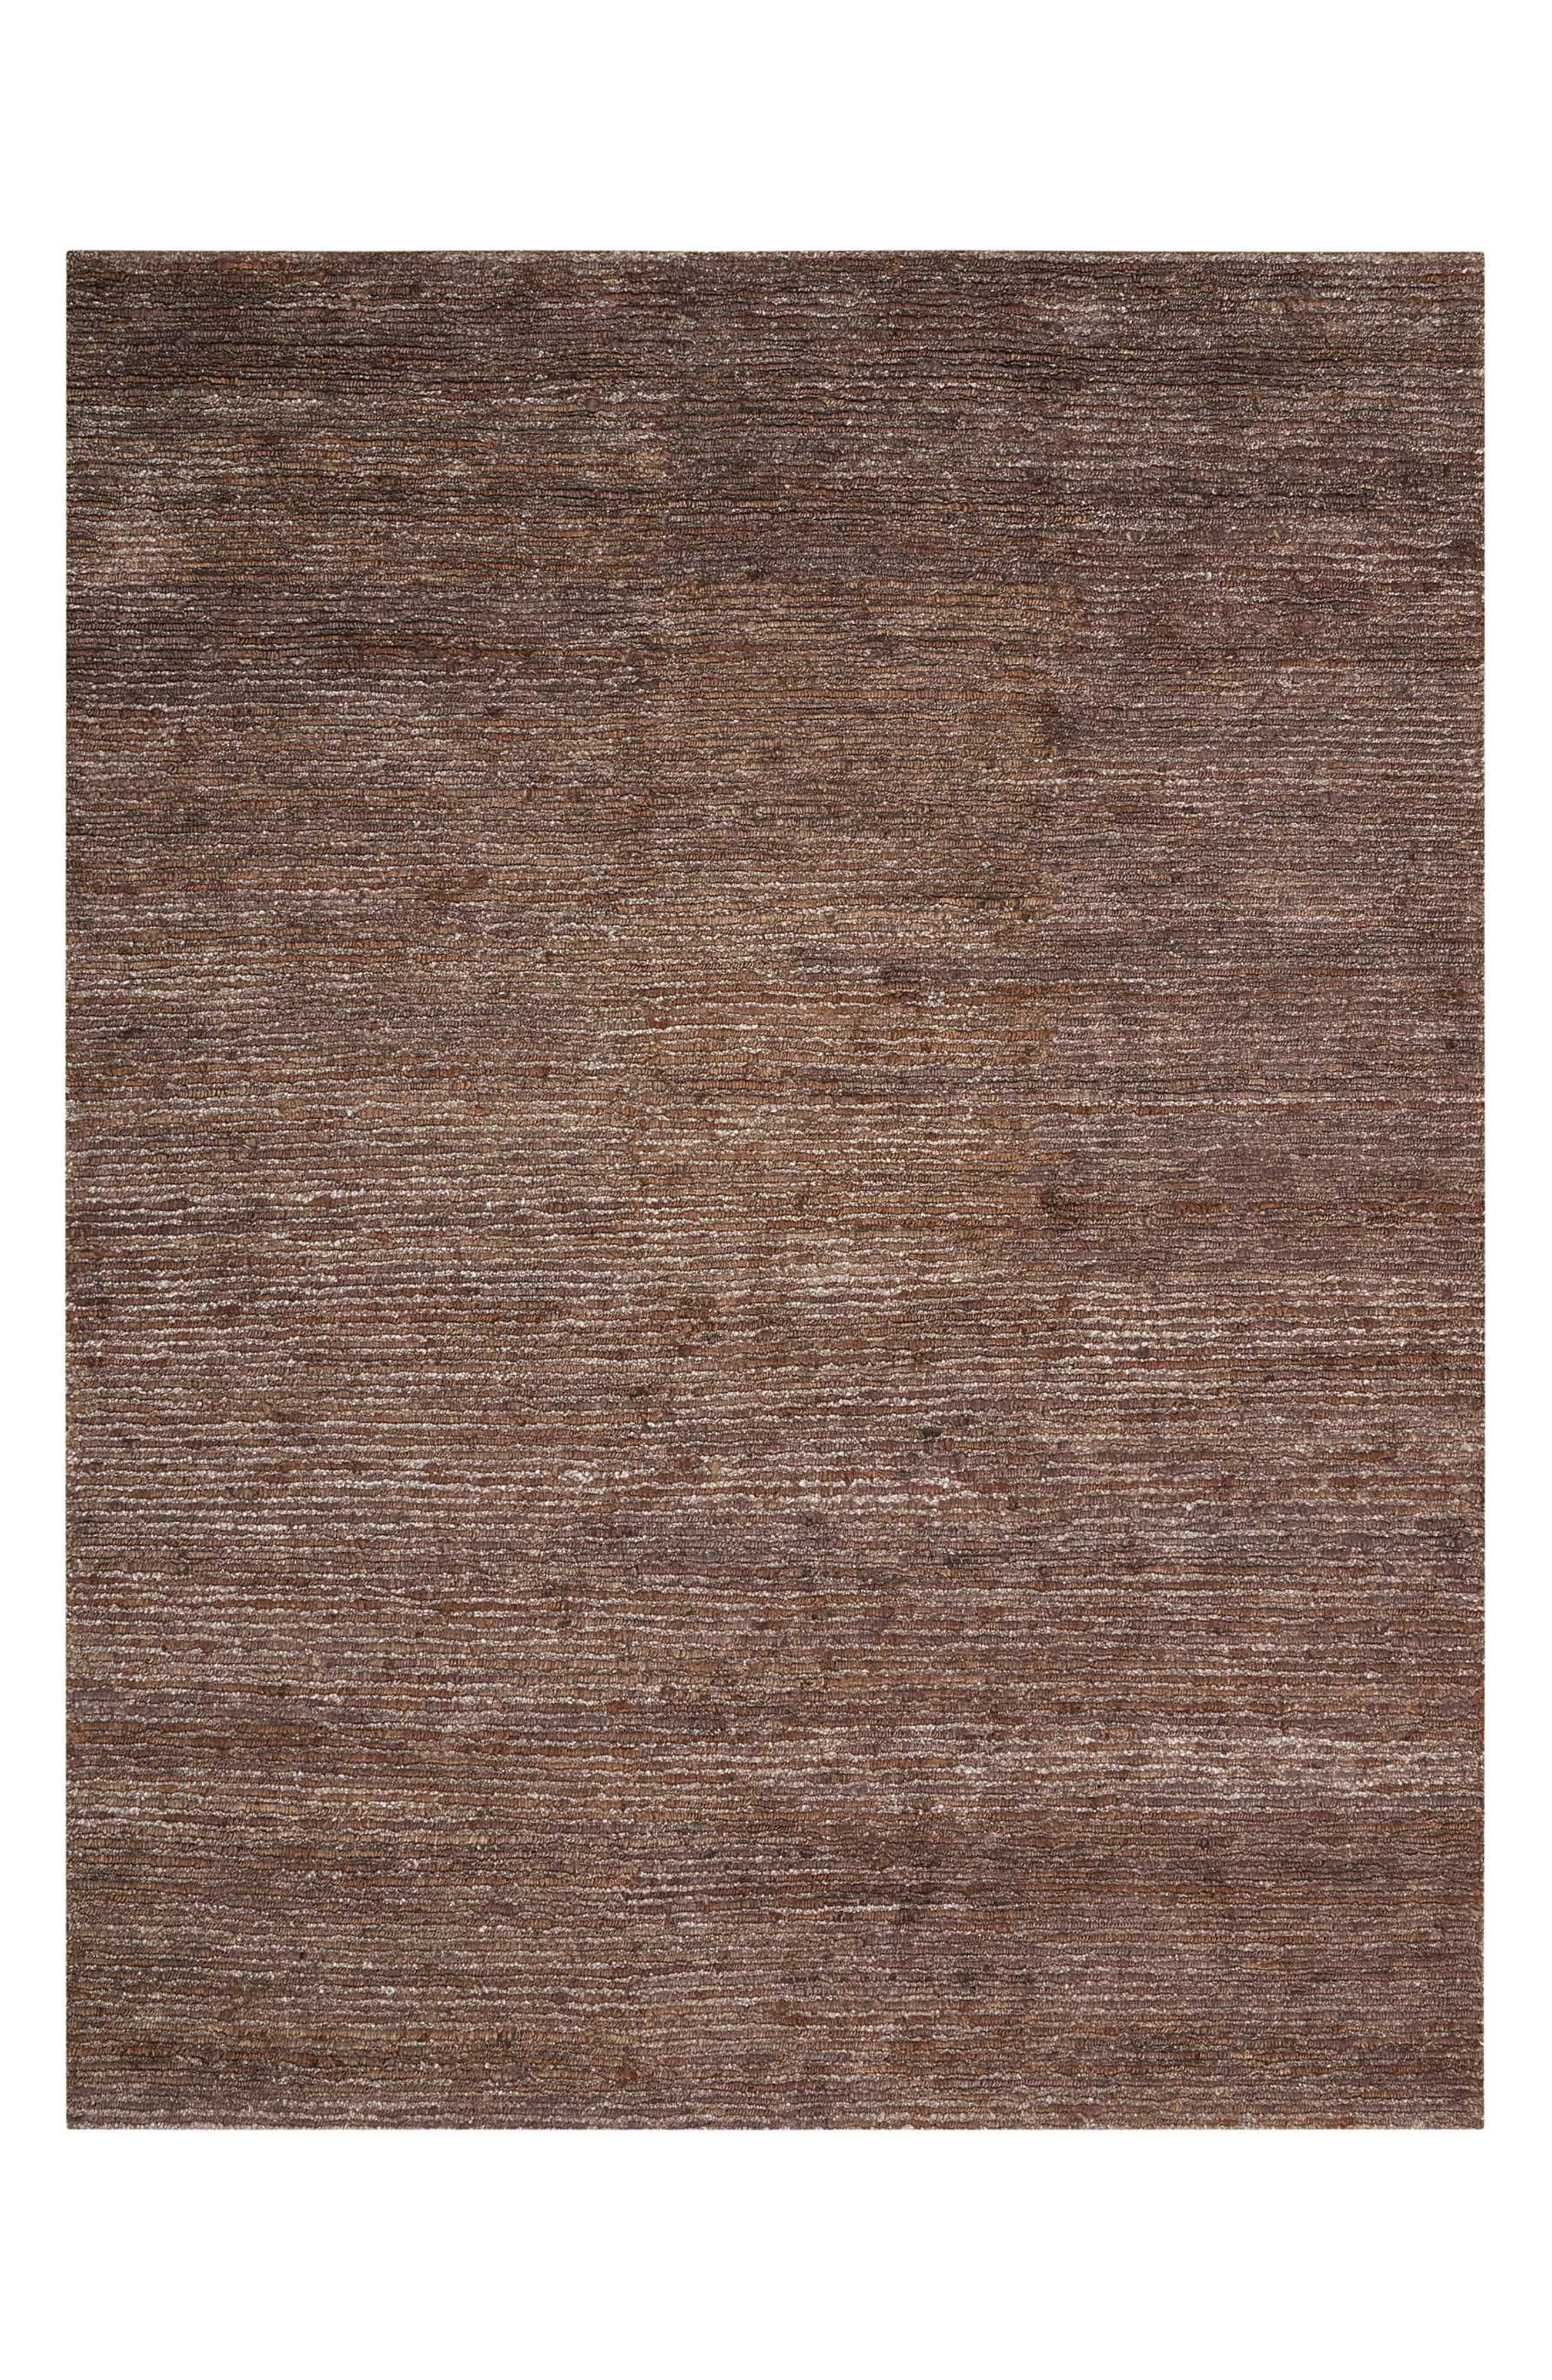 Home Mesa Indus Area Rug,                         Main,                         color, Amber